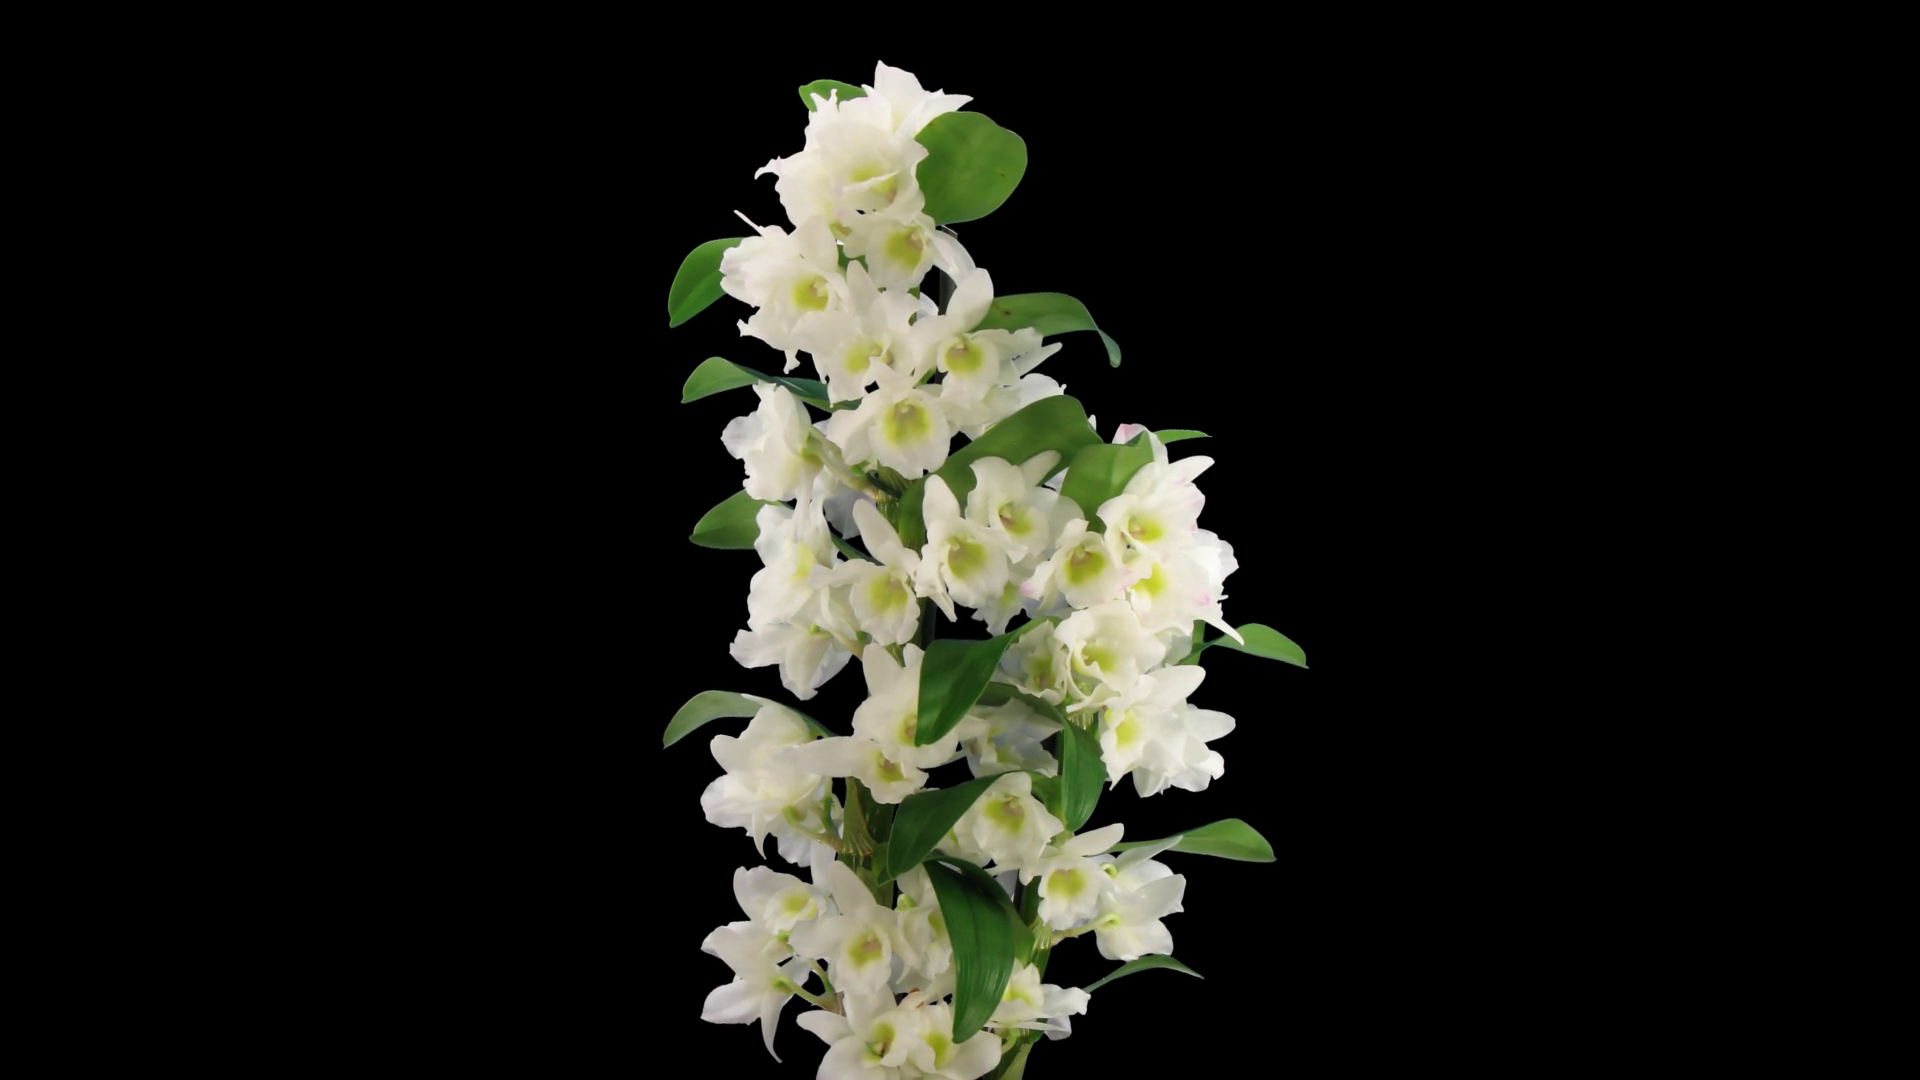 Dendrobium Nobile Png - Time-lapse of opening Orchid Dendrobium (Nobile type hybrid) 1c1 ...